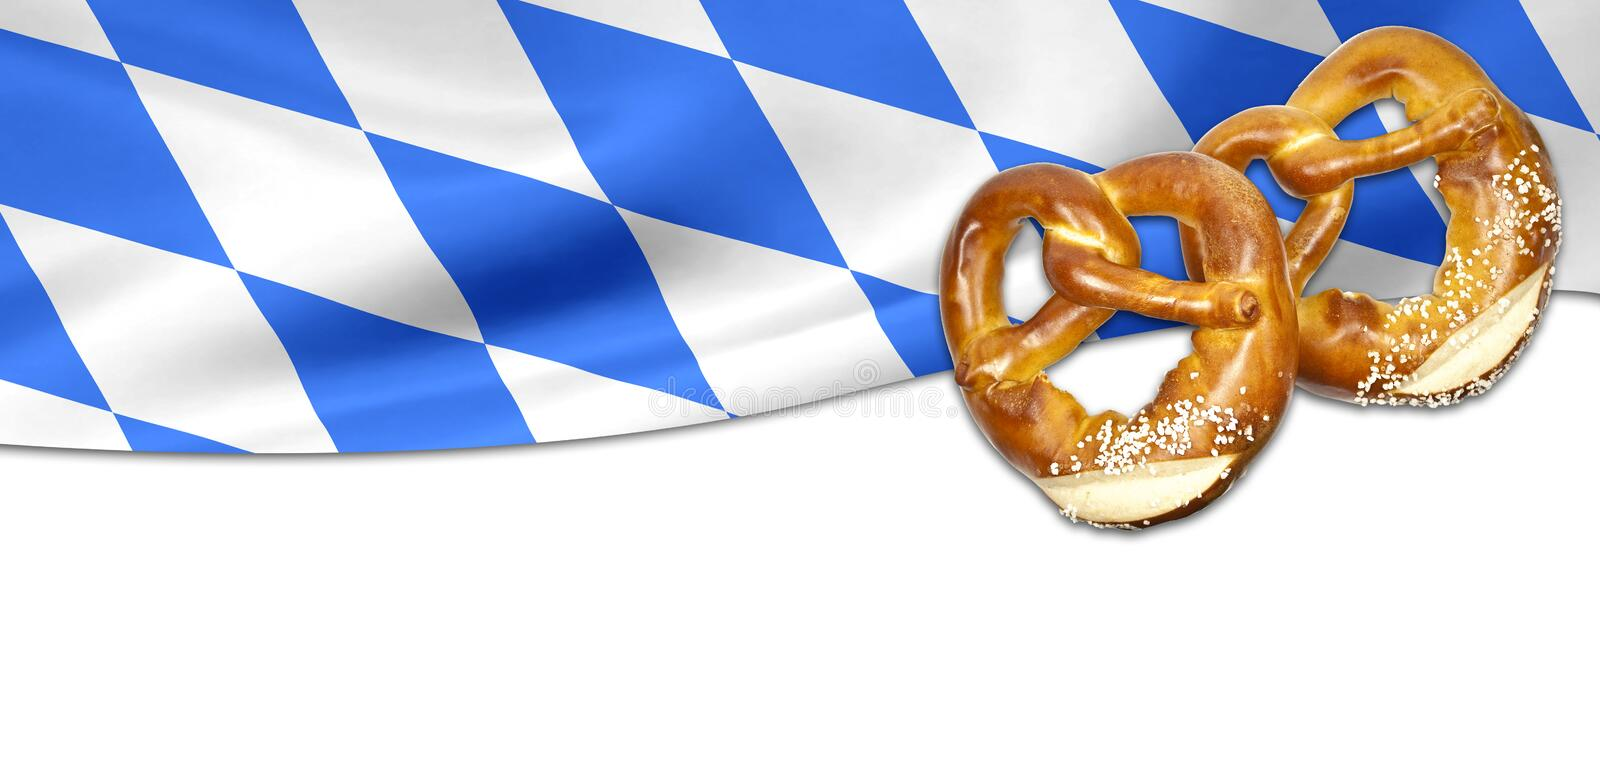 Traditional german bavarian festival Oktoberfest with pretzels, beer and gingerbread heart royalty free stock images